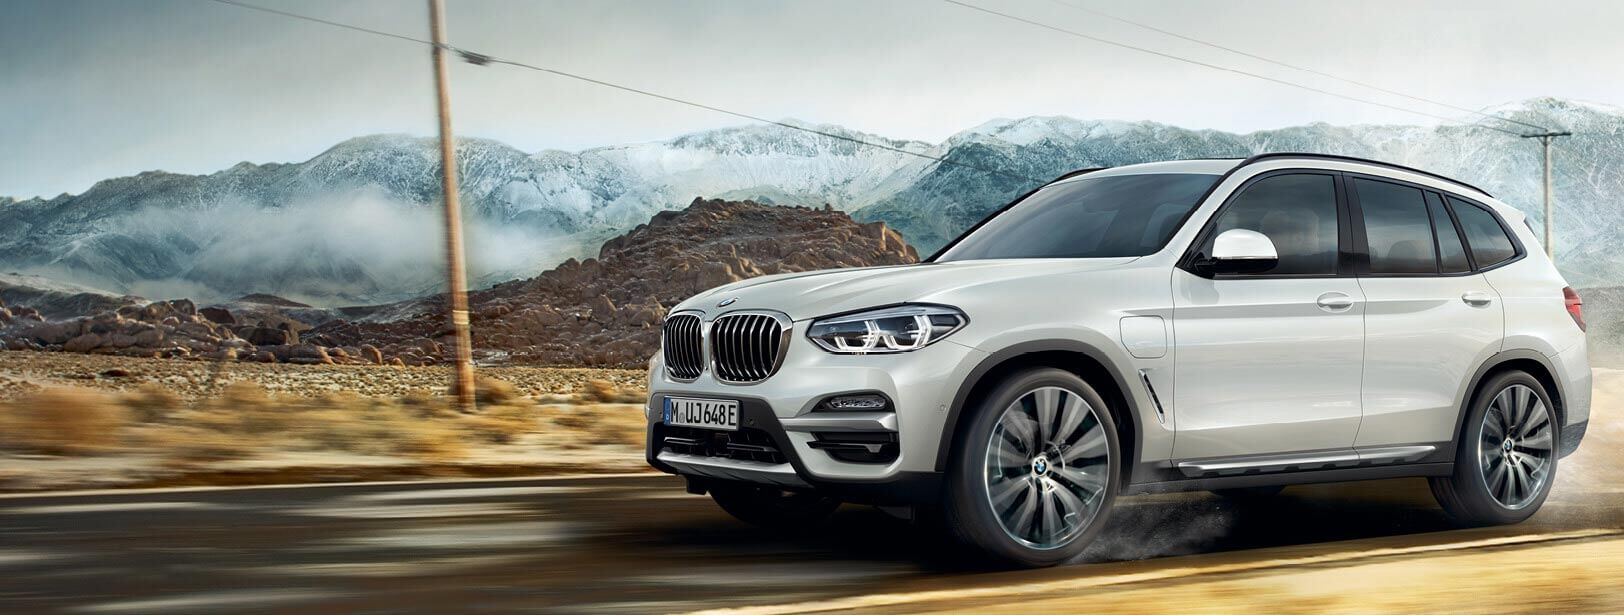 THE X3: DER BMW X3 30e PLUG-IN-HYBRID